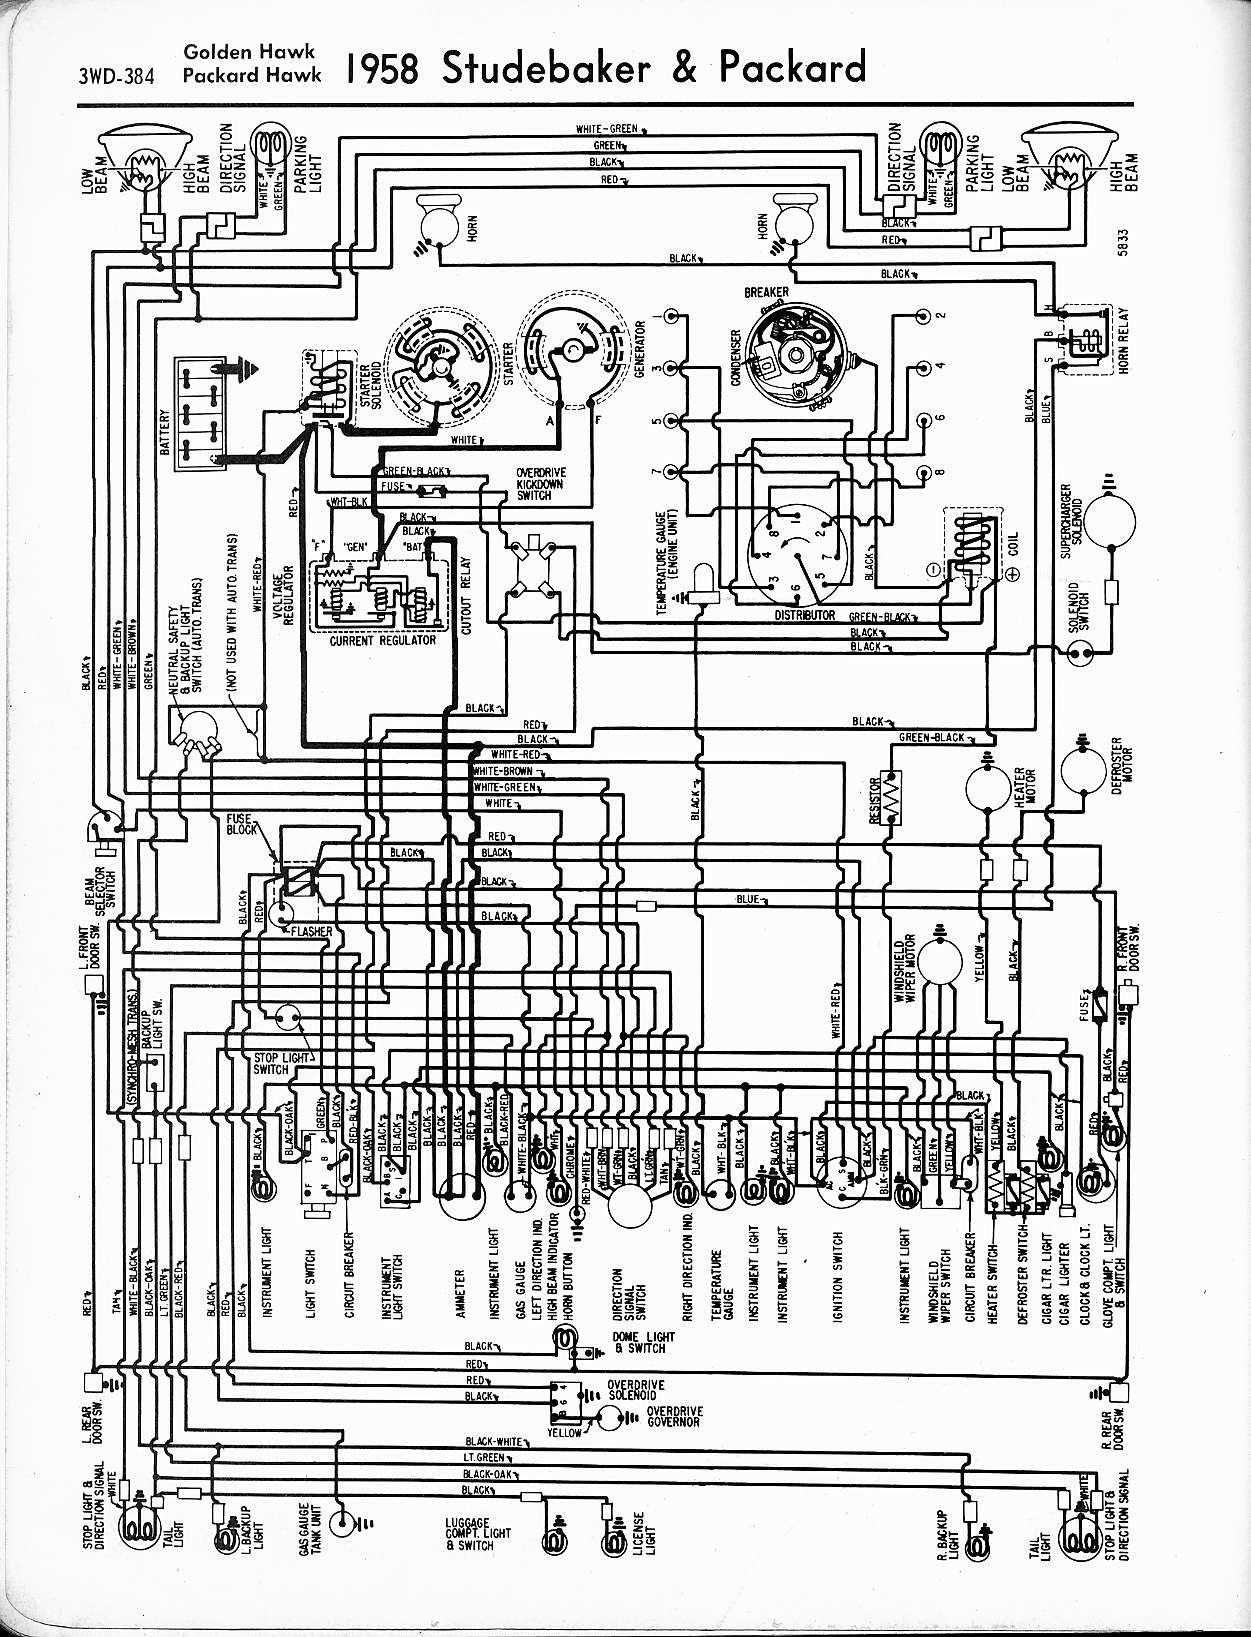 packard wiring diagrams the old car manual project rh oldcarmanualproject  com Computer Wiring Diagram Electrical Wiring